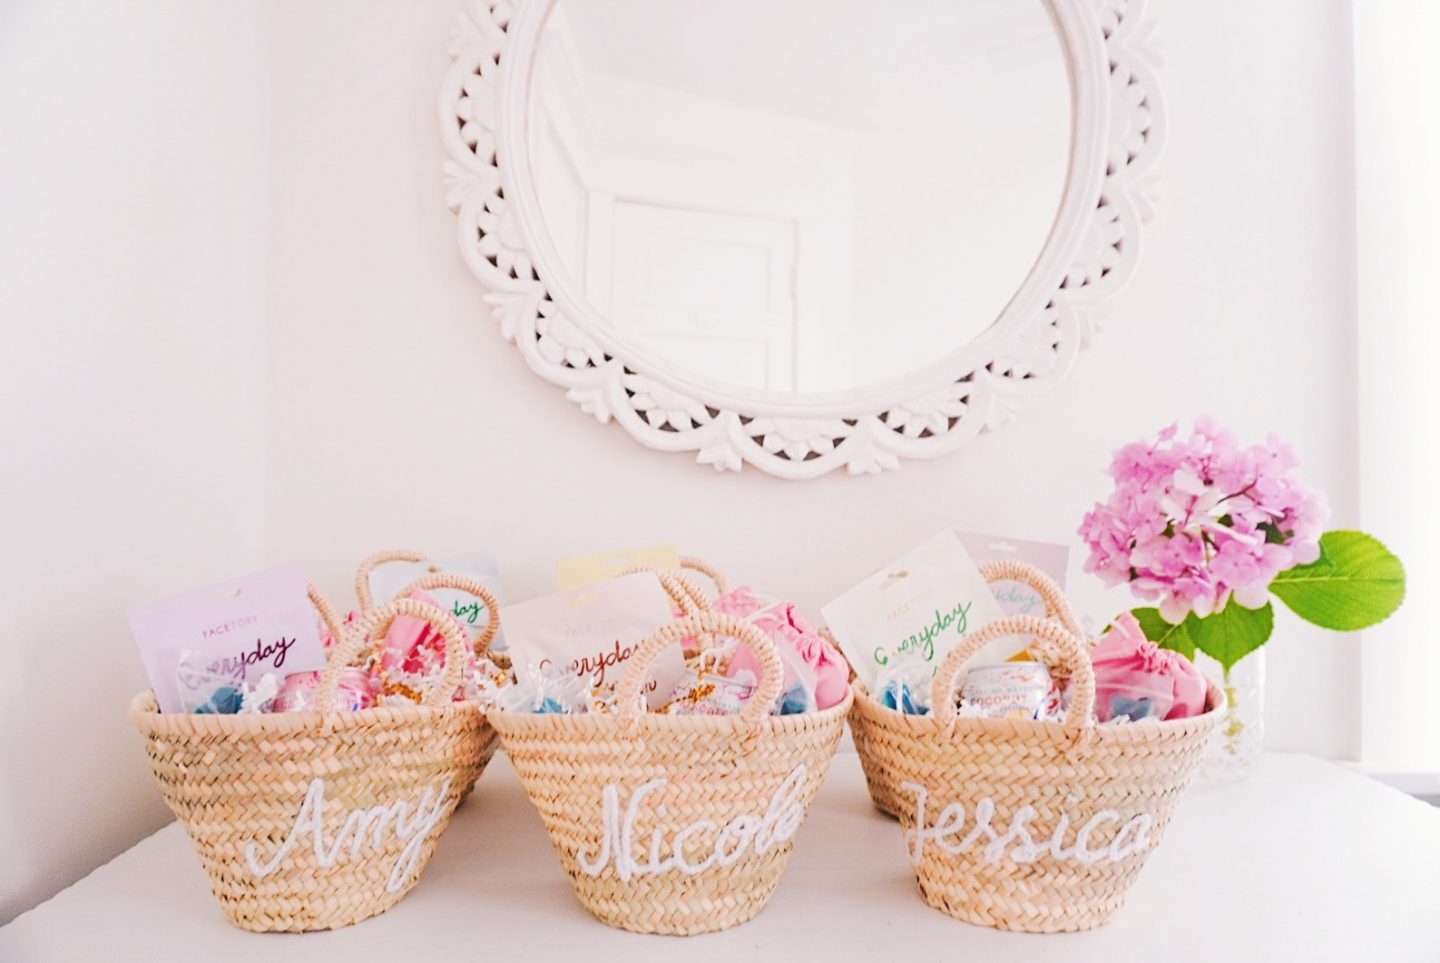 Cute beachy embroidered straw bag welcome baskets for your girlfriends